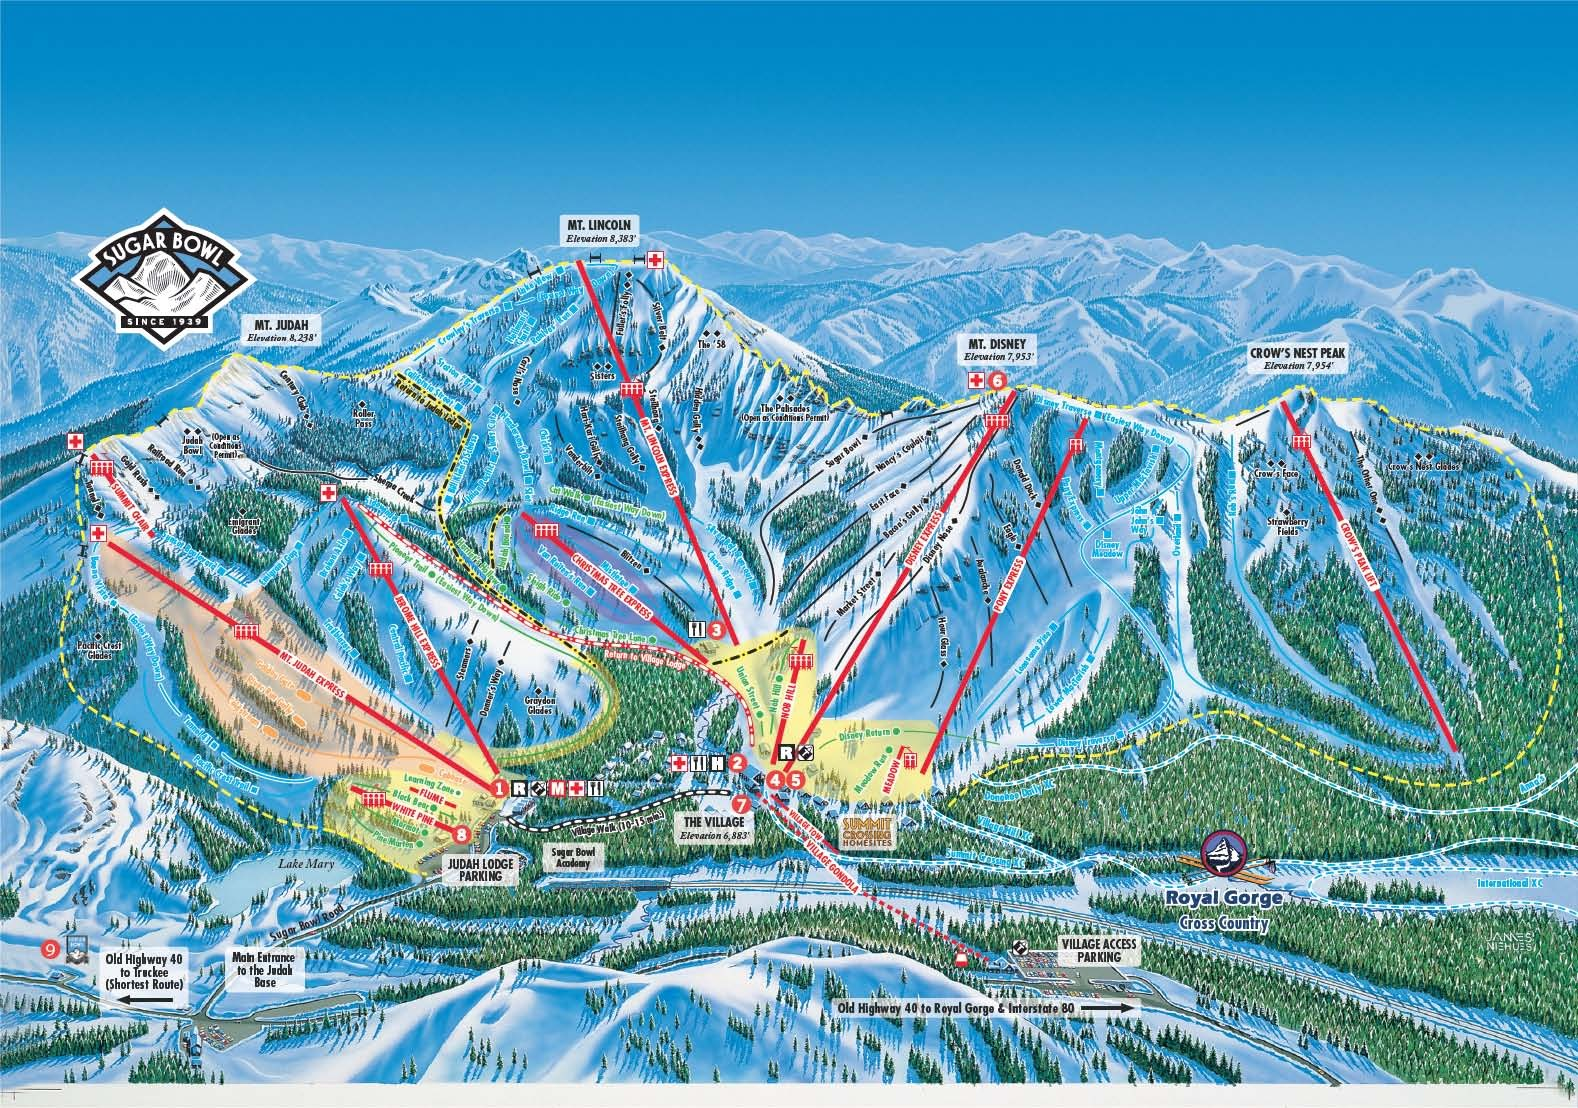 lake tahoe map ski resorts with Sugar Bowl Ski Resort on Gerlitzen as well Area hot springs moreover Tahoe south c ing map as well 23714335508152913 together with Beaver Creek.